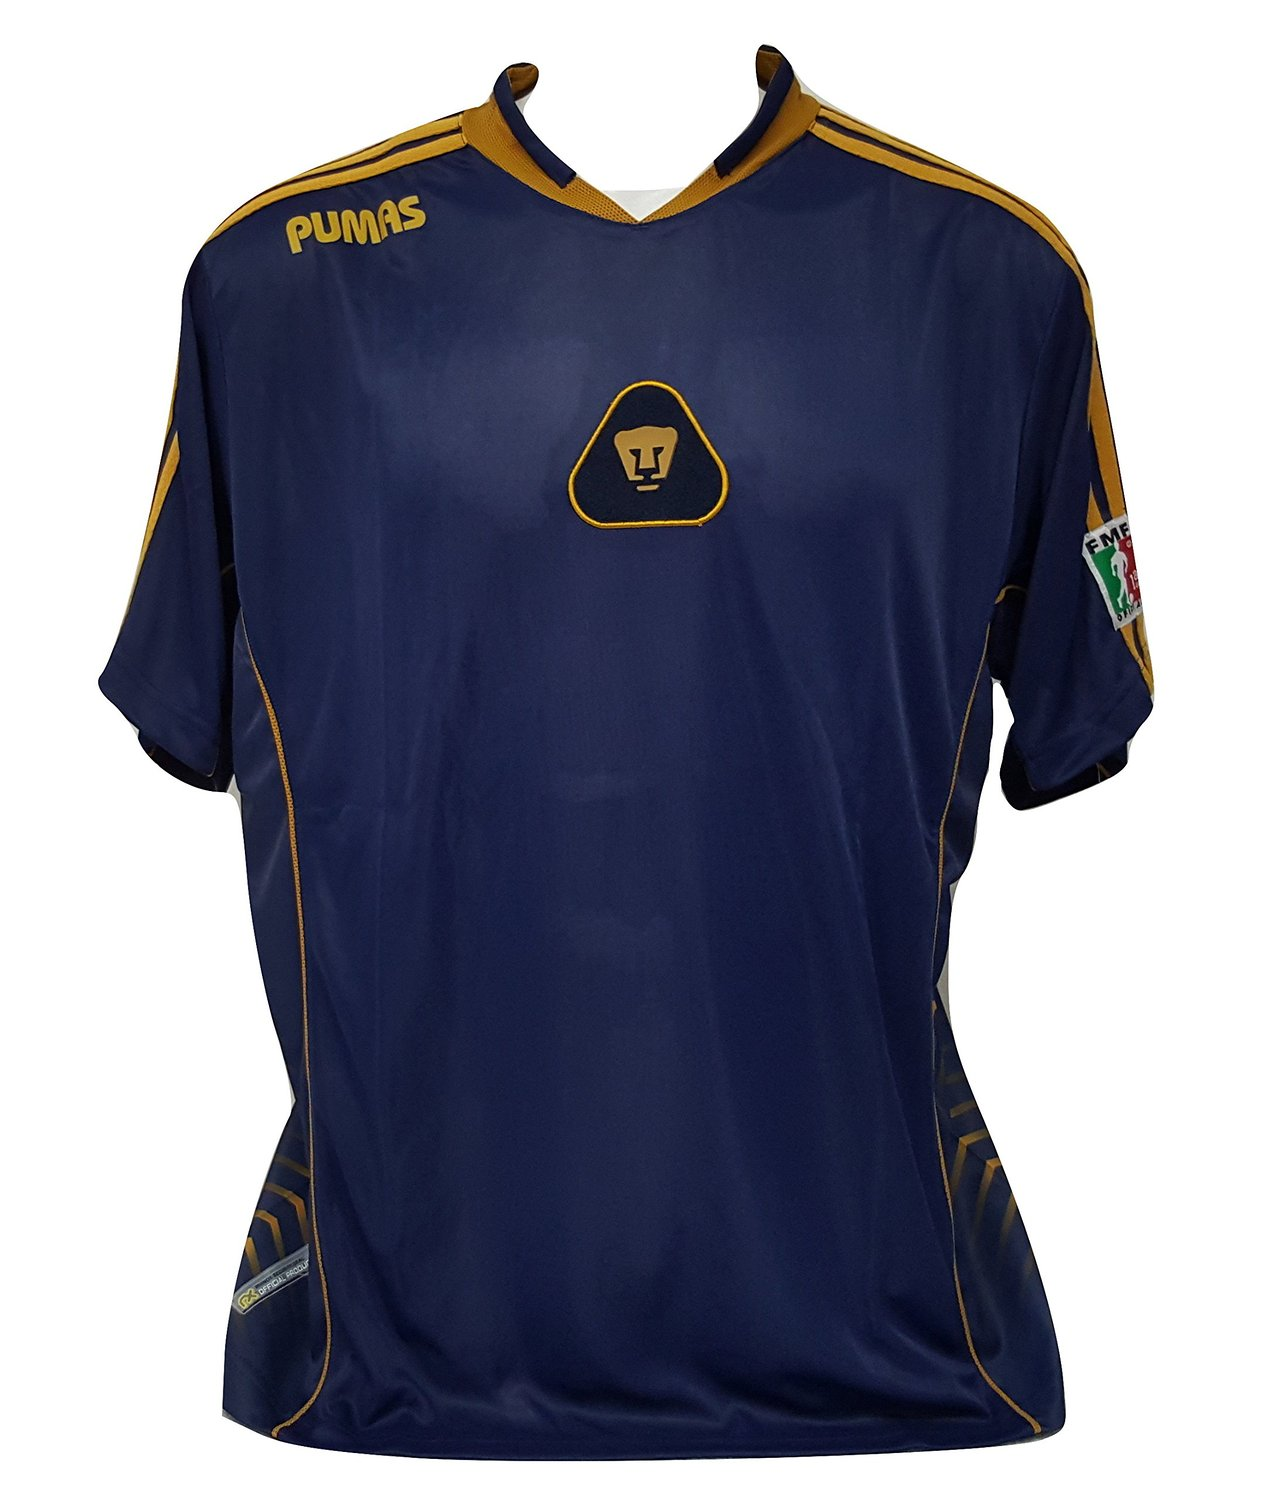 wholesale dealer c9f89 2baa0 Get Quotations · Pumas de la UNAM Men s Soccer Jersey Size Large